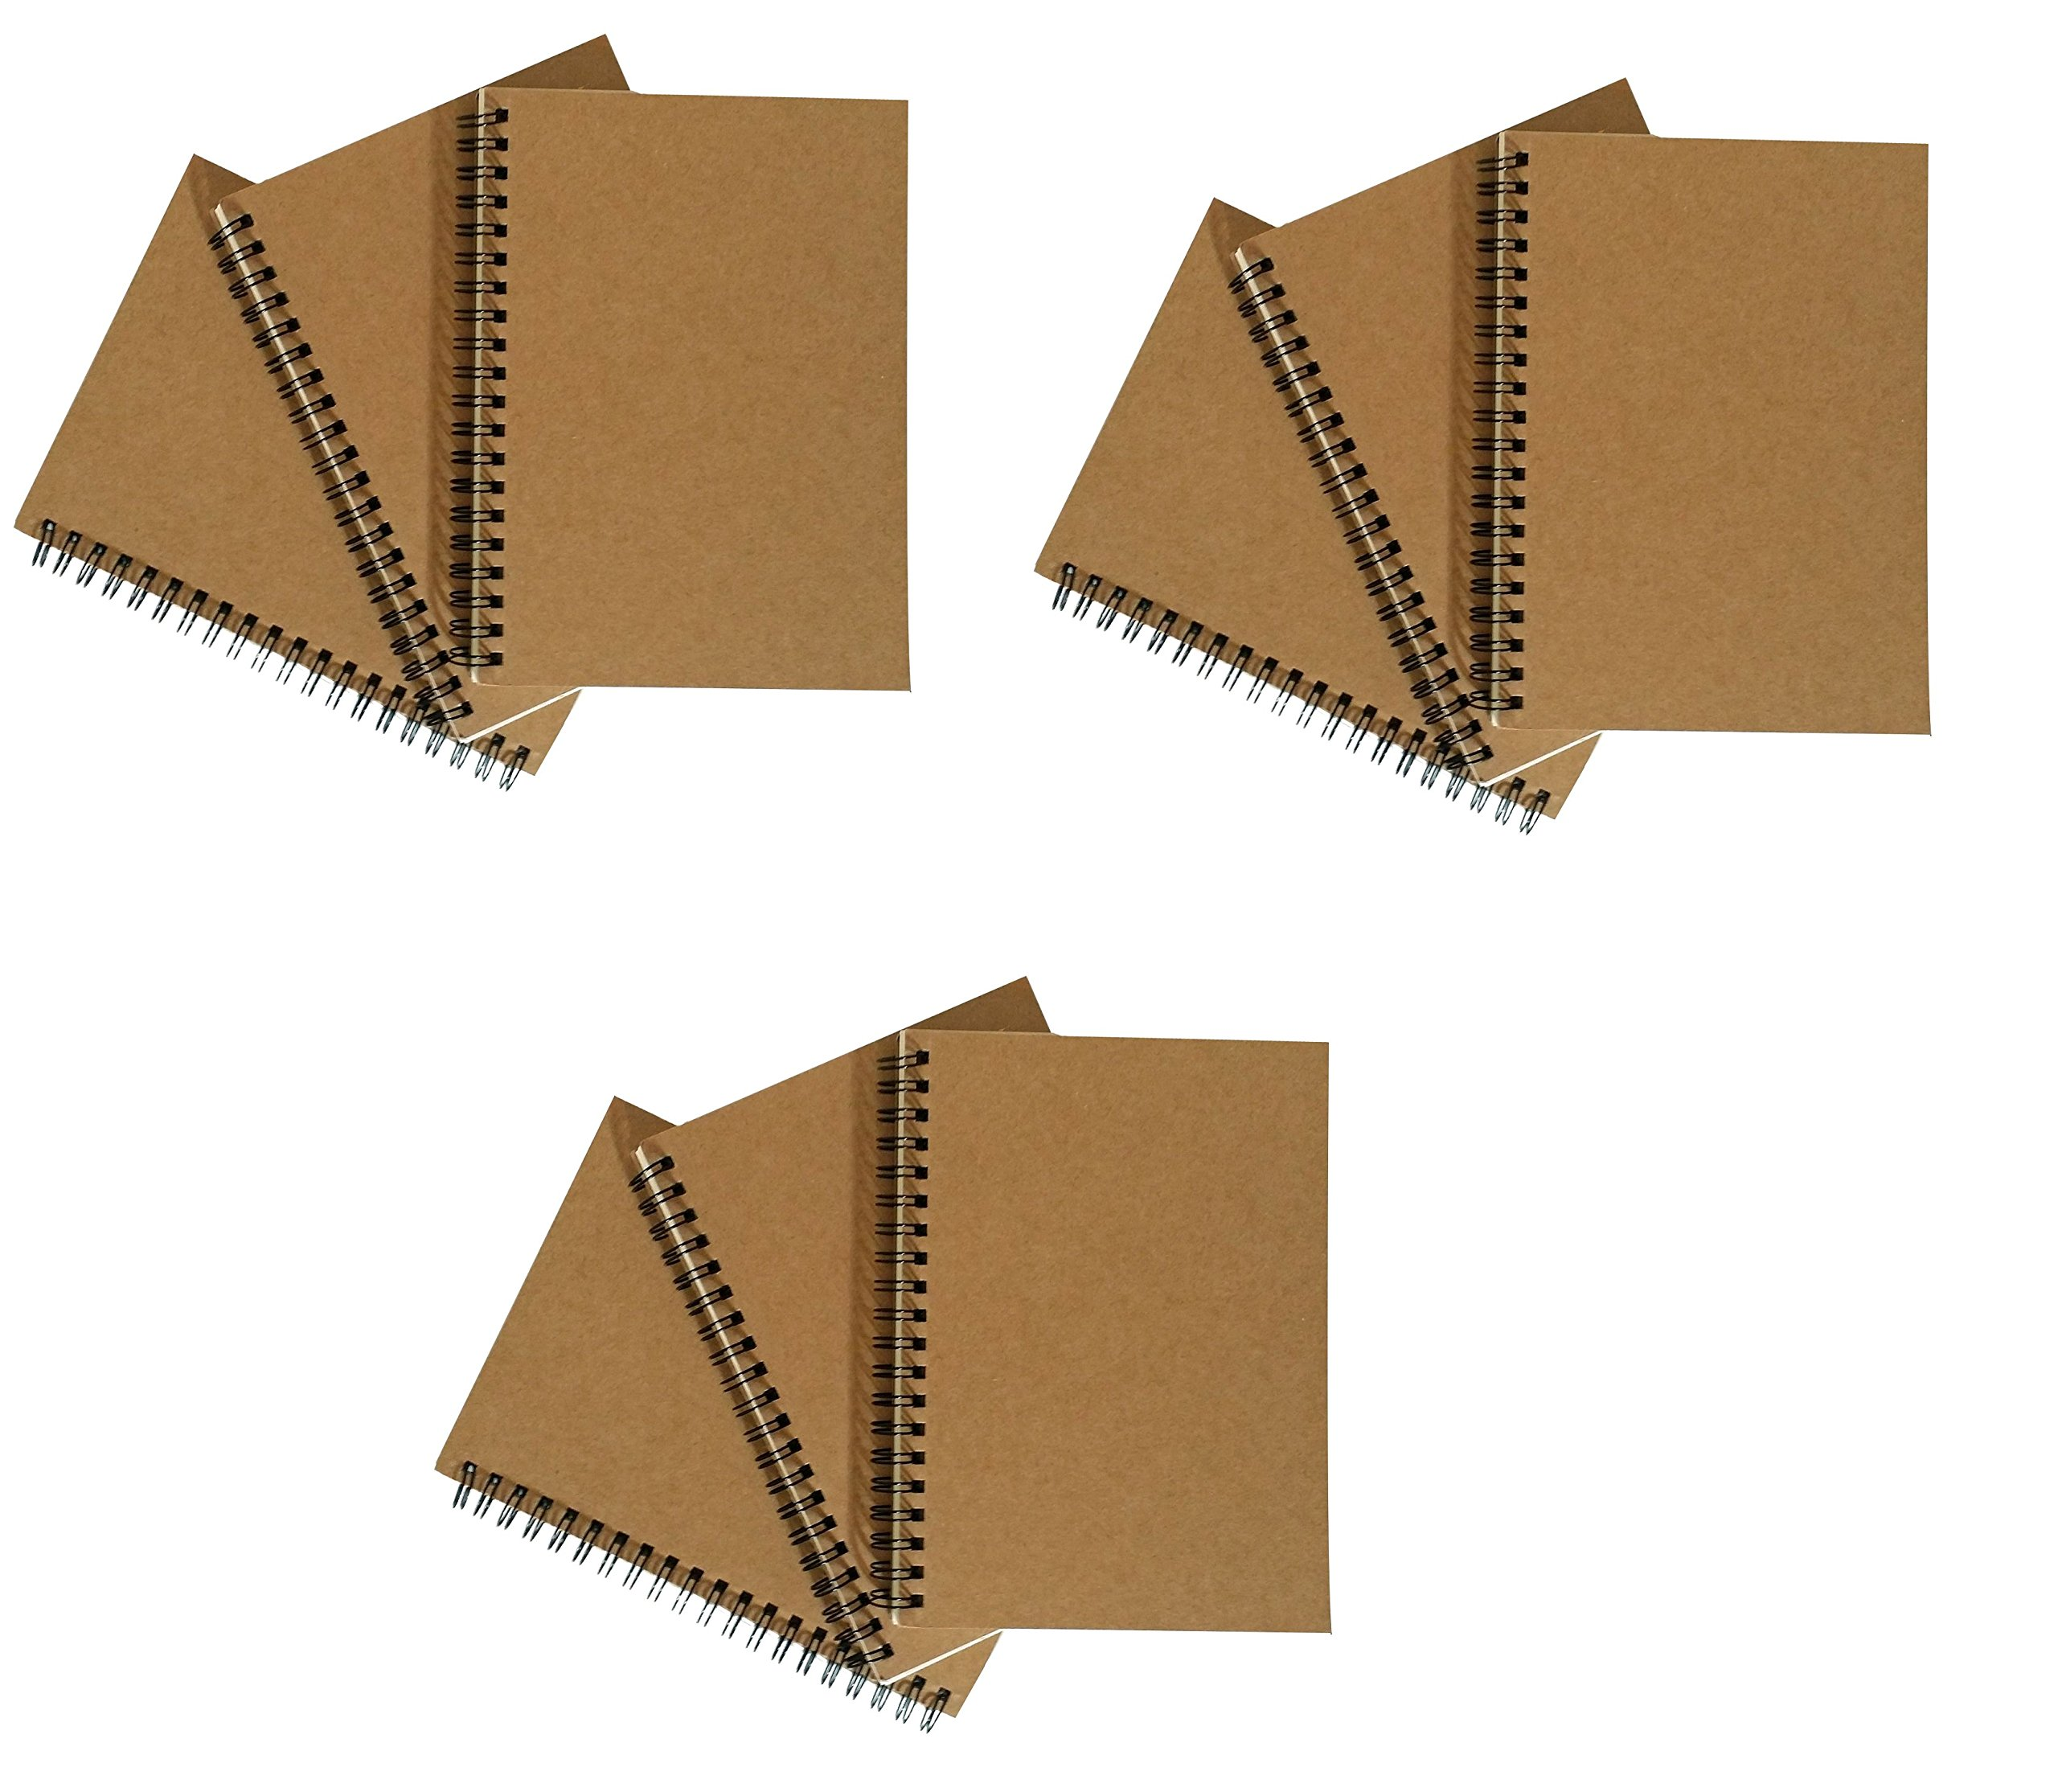 Notepads with Kraft Paper Covers - Bulk Buys (9 Notebooks, 5 x 7 No Pocket)